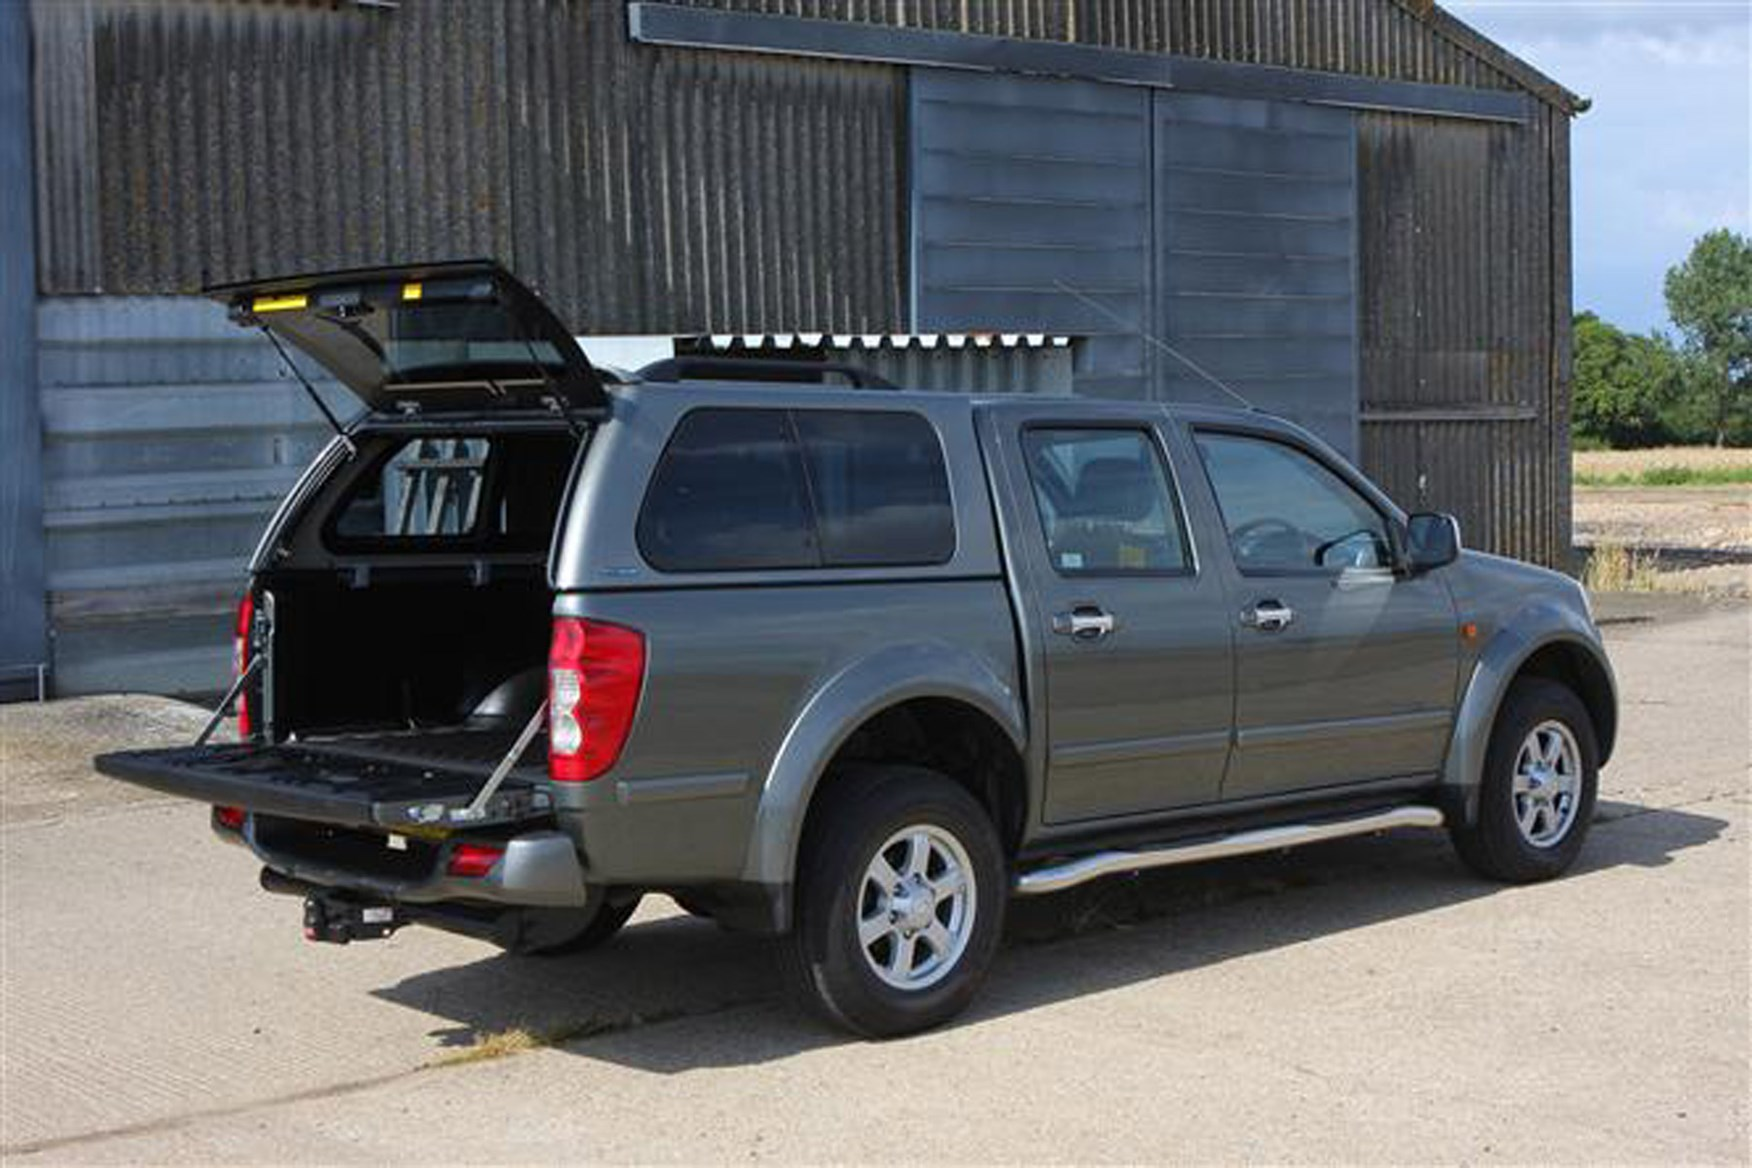 Great Wall Steed full review on Parkers Vans - dimensions and load area